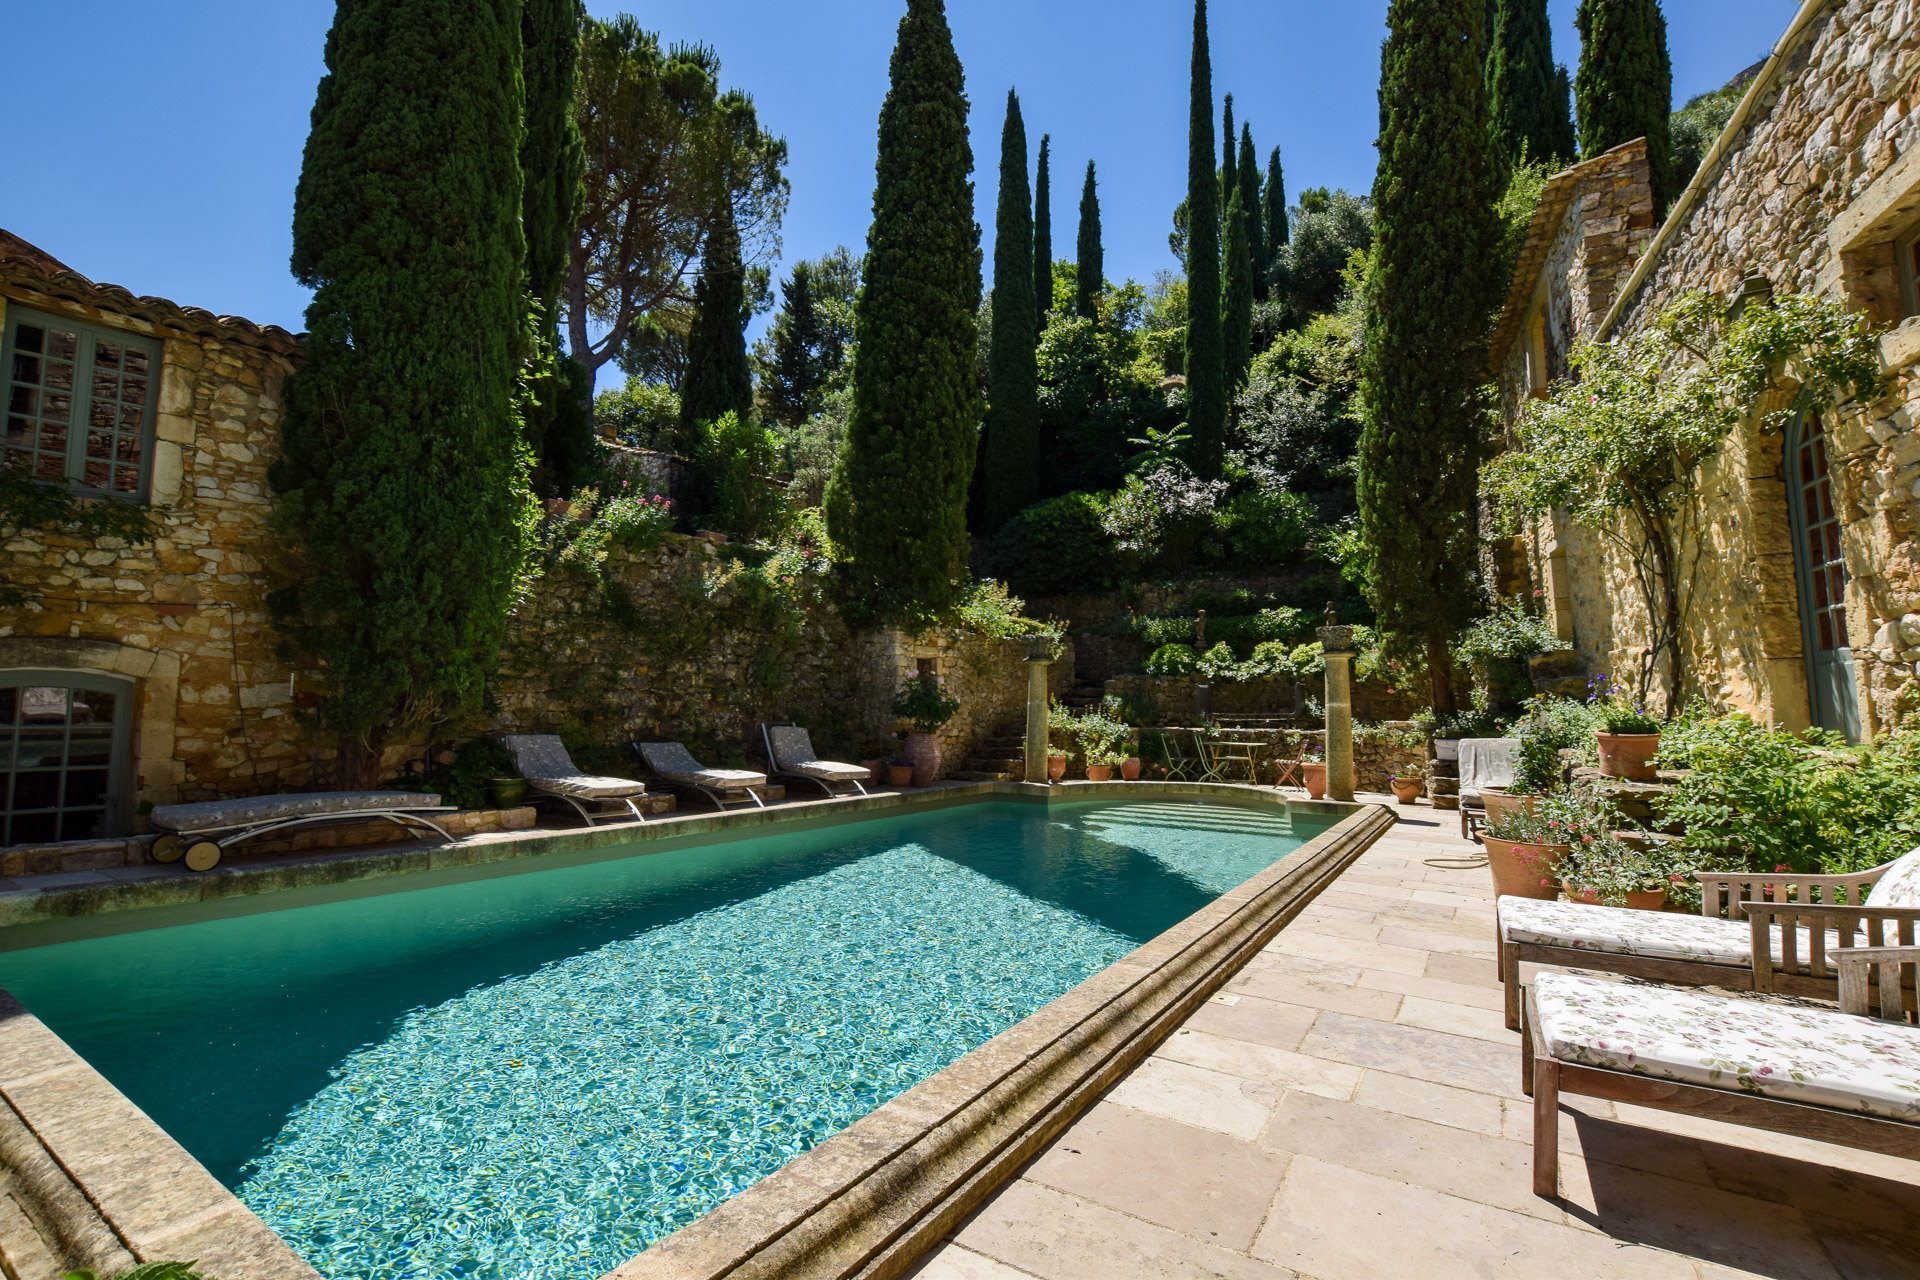 Château, 17th century, splendid renovation at 20 minutes from Avignon, pool and gardens